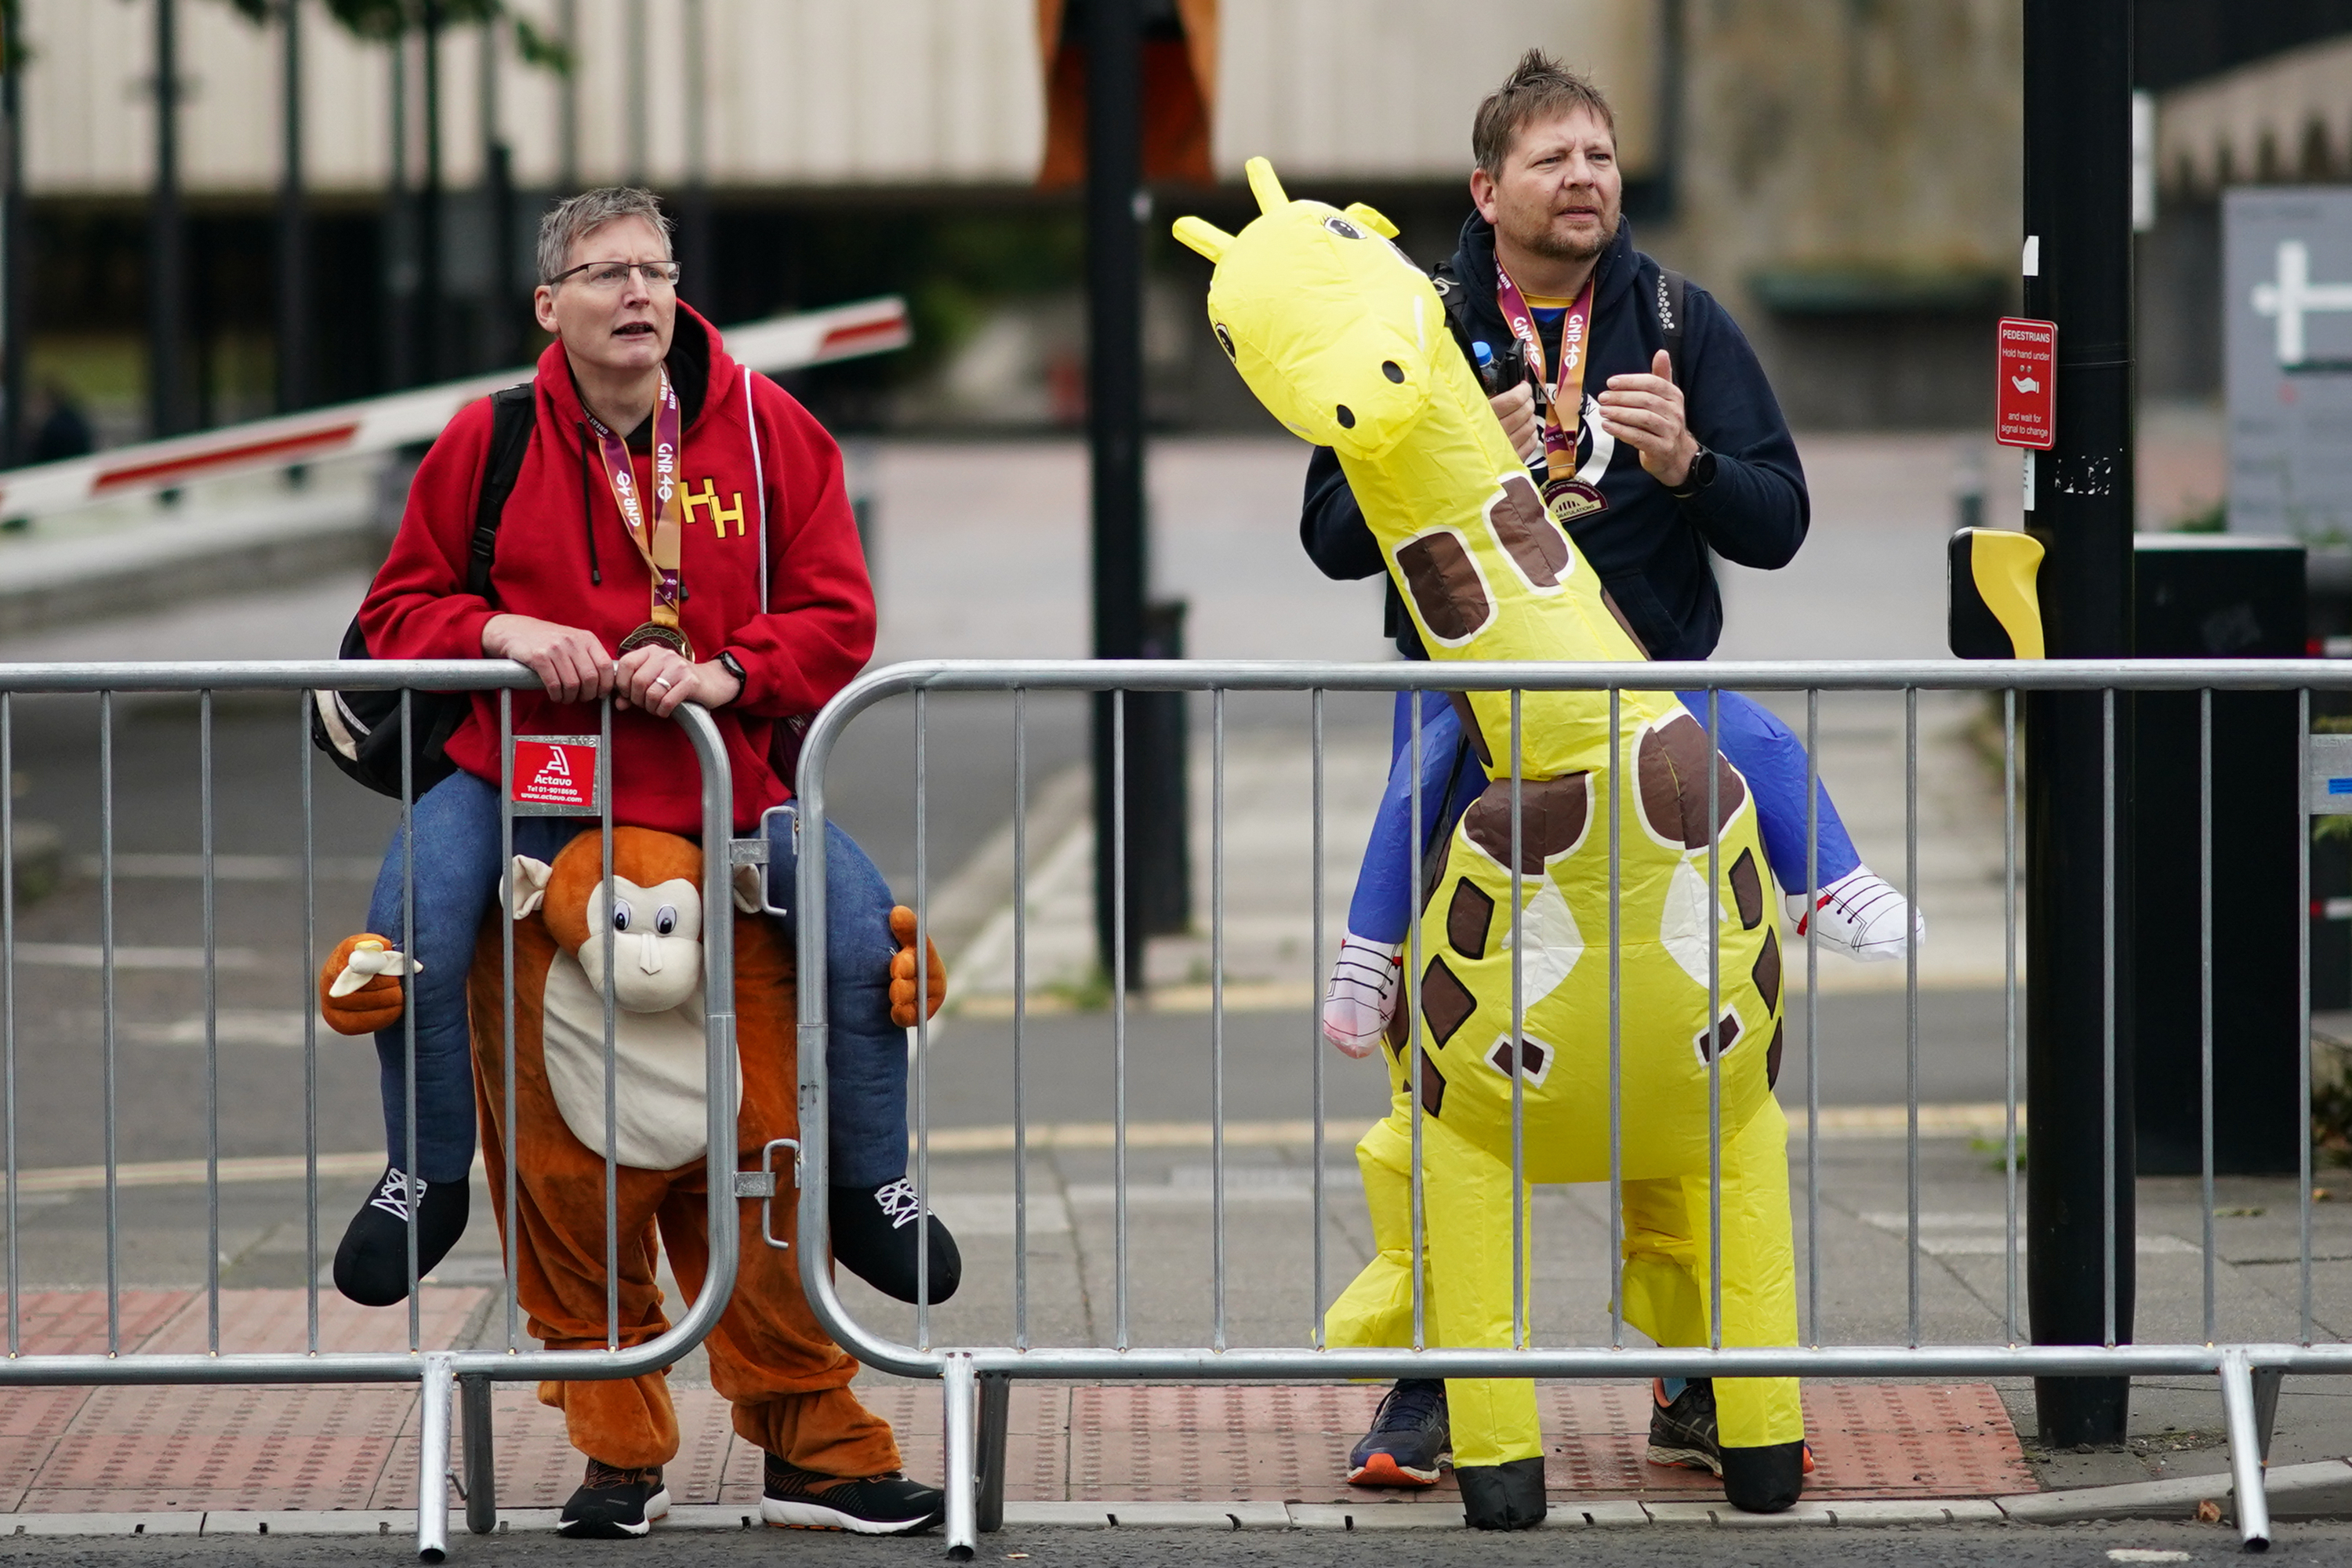 <p>NEWCASTLE UPON TYNE, ENGLAND - SEPTEMBER 12: Two runners in fancy dress support other runners as they run during the 40th Great North Run on September 12, 2021 in Newcastle upon Tyne, England. Approximately 57,000 runners are expected to take part in the marathon to raise money for a variety of different charities. The event, which was cancelled in 2020 due to the COVID-19 pandemic, is being held with several coronavirus safety measure in place, including route changes, staggered start times and hand sanitiser stations. (Photo by Ian Forsyth/Getty Images)</p>